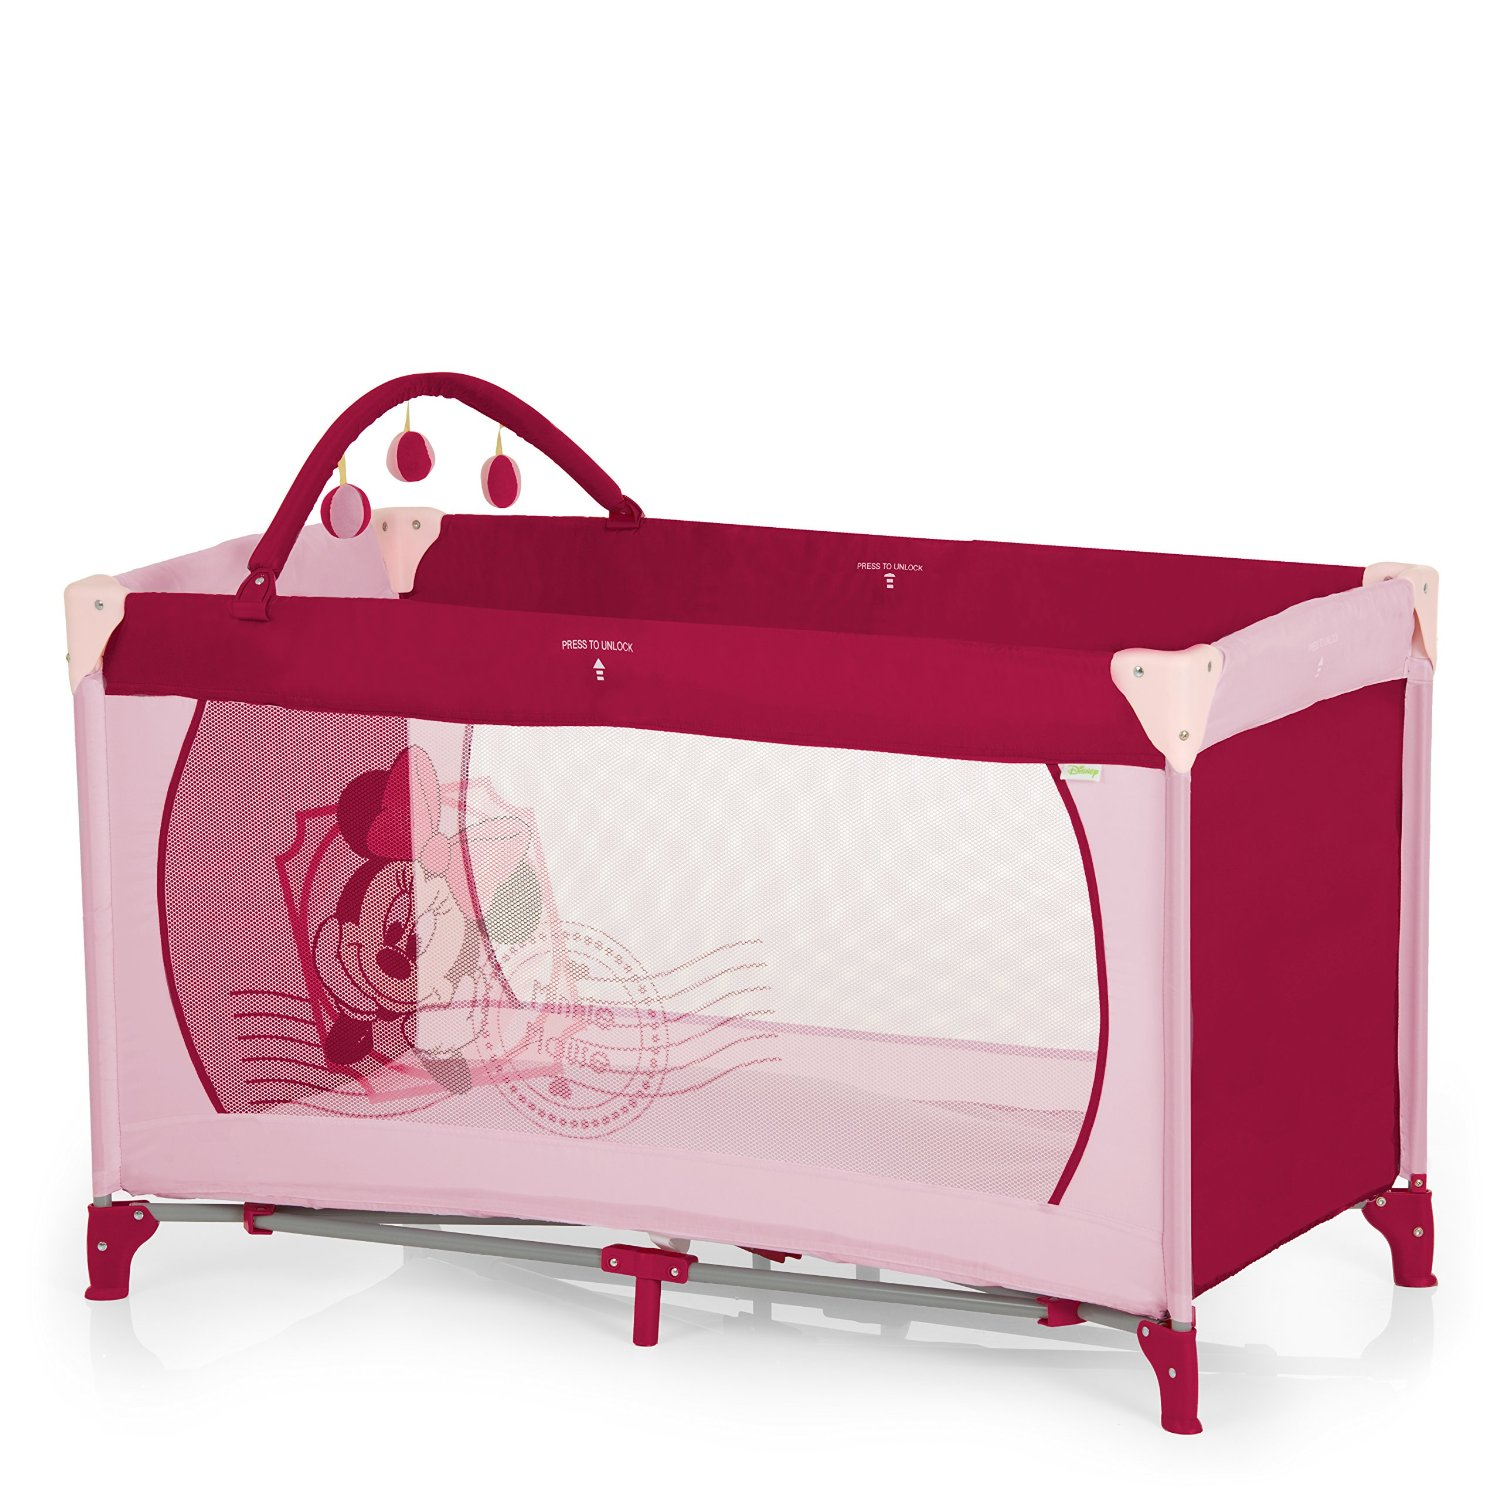 Hauck Lit Pliant Dream N Play, Minnie rose